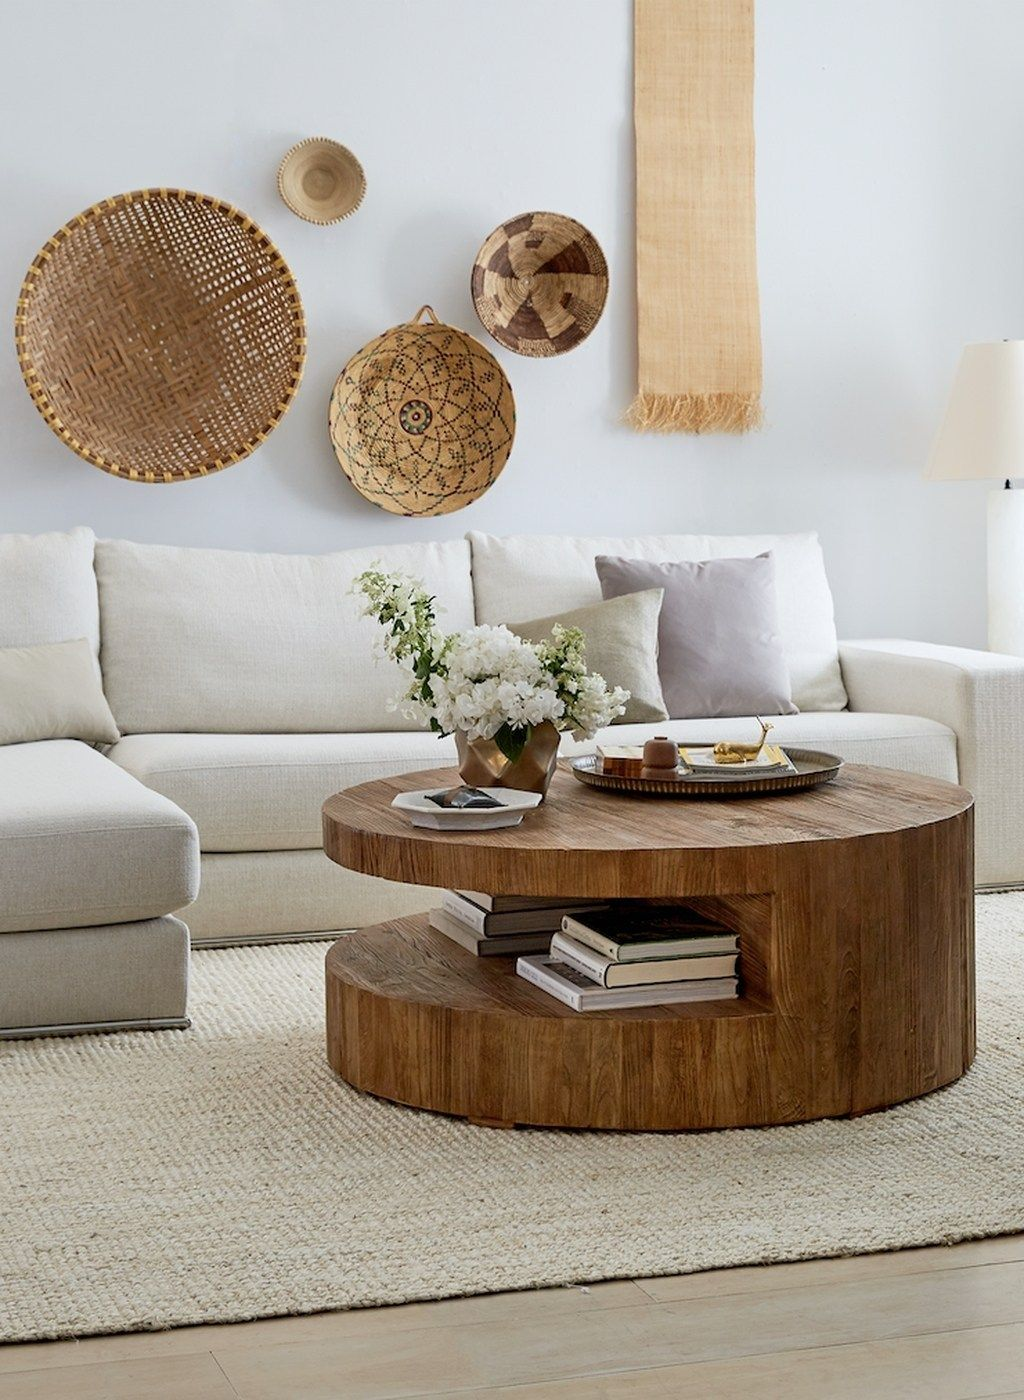 The Best Modern Coffee Table Ideas Perfect For Modern Home Design 17 Table Decor Living Room Small Living Room Table Wooden Coffee Table Designs [ 1400 x 1024 Pixel ]